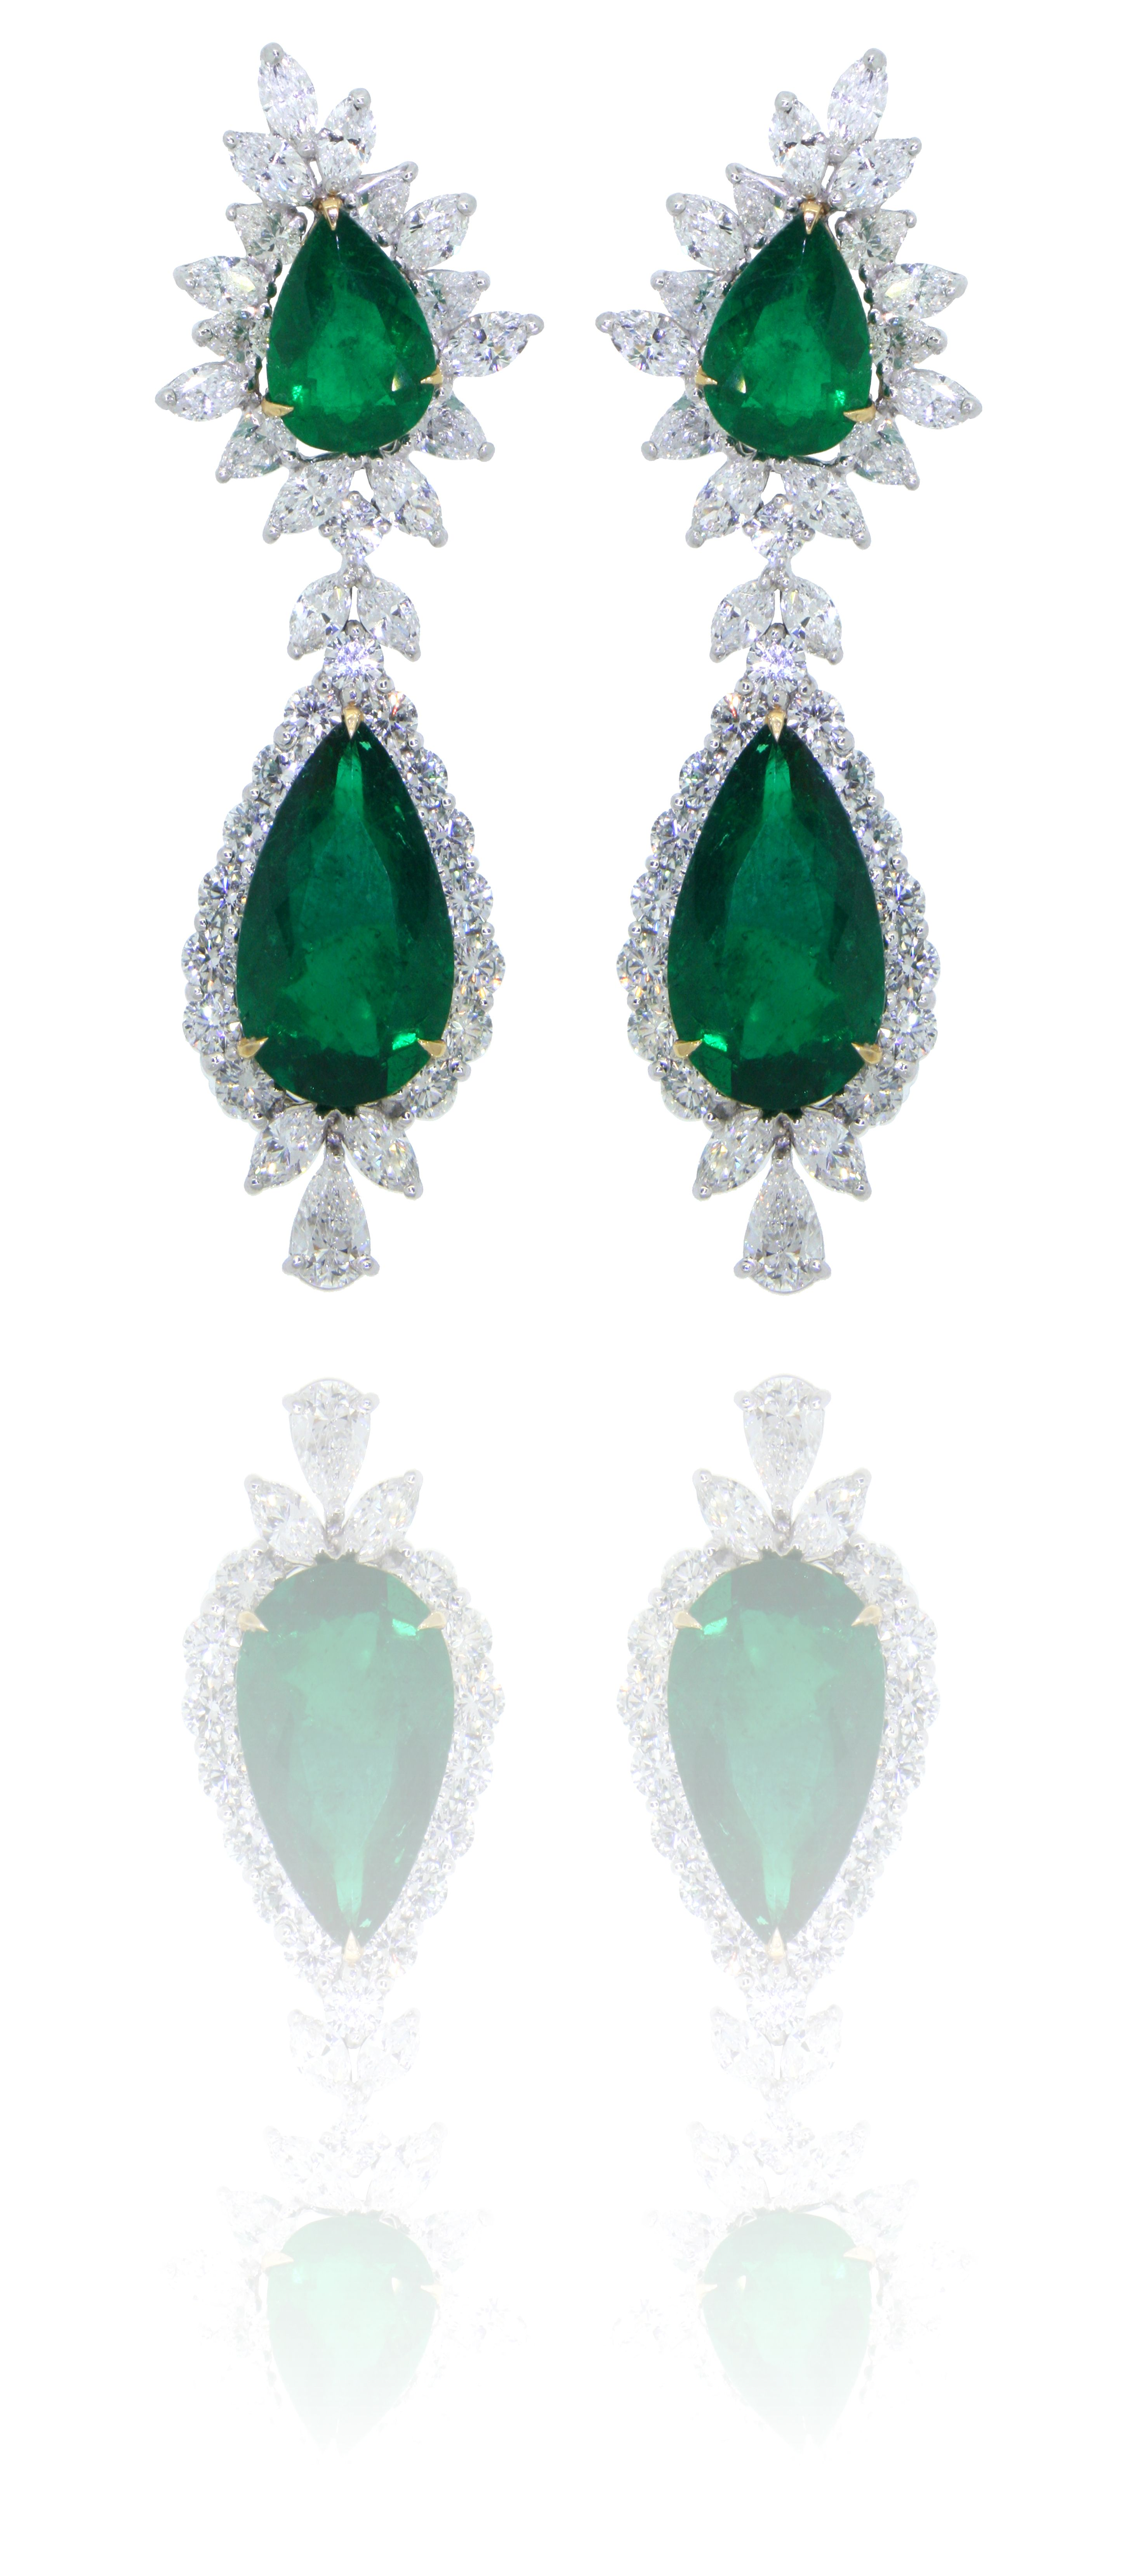 #Emerald & #Diamond #Earrings - Available at A.R.T. #Jewelry on #Worth #Avenue in #Palm #Beach